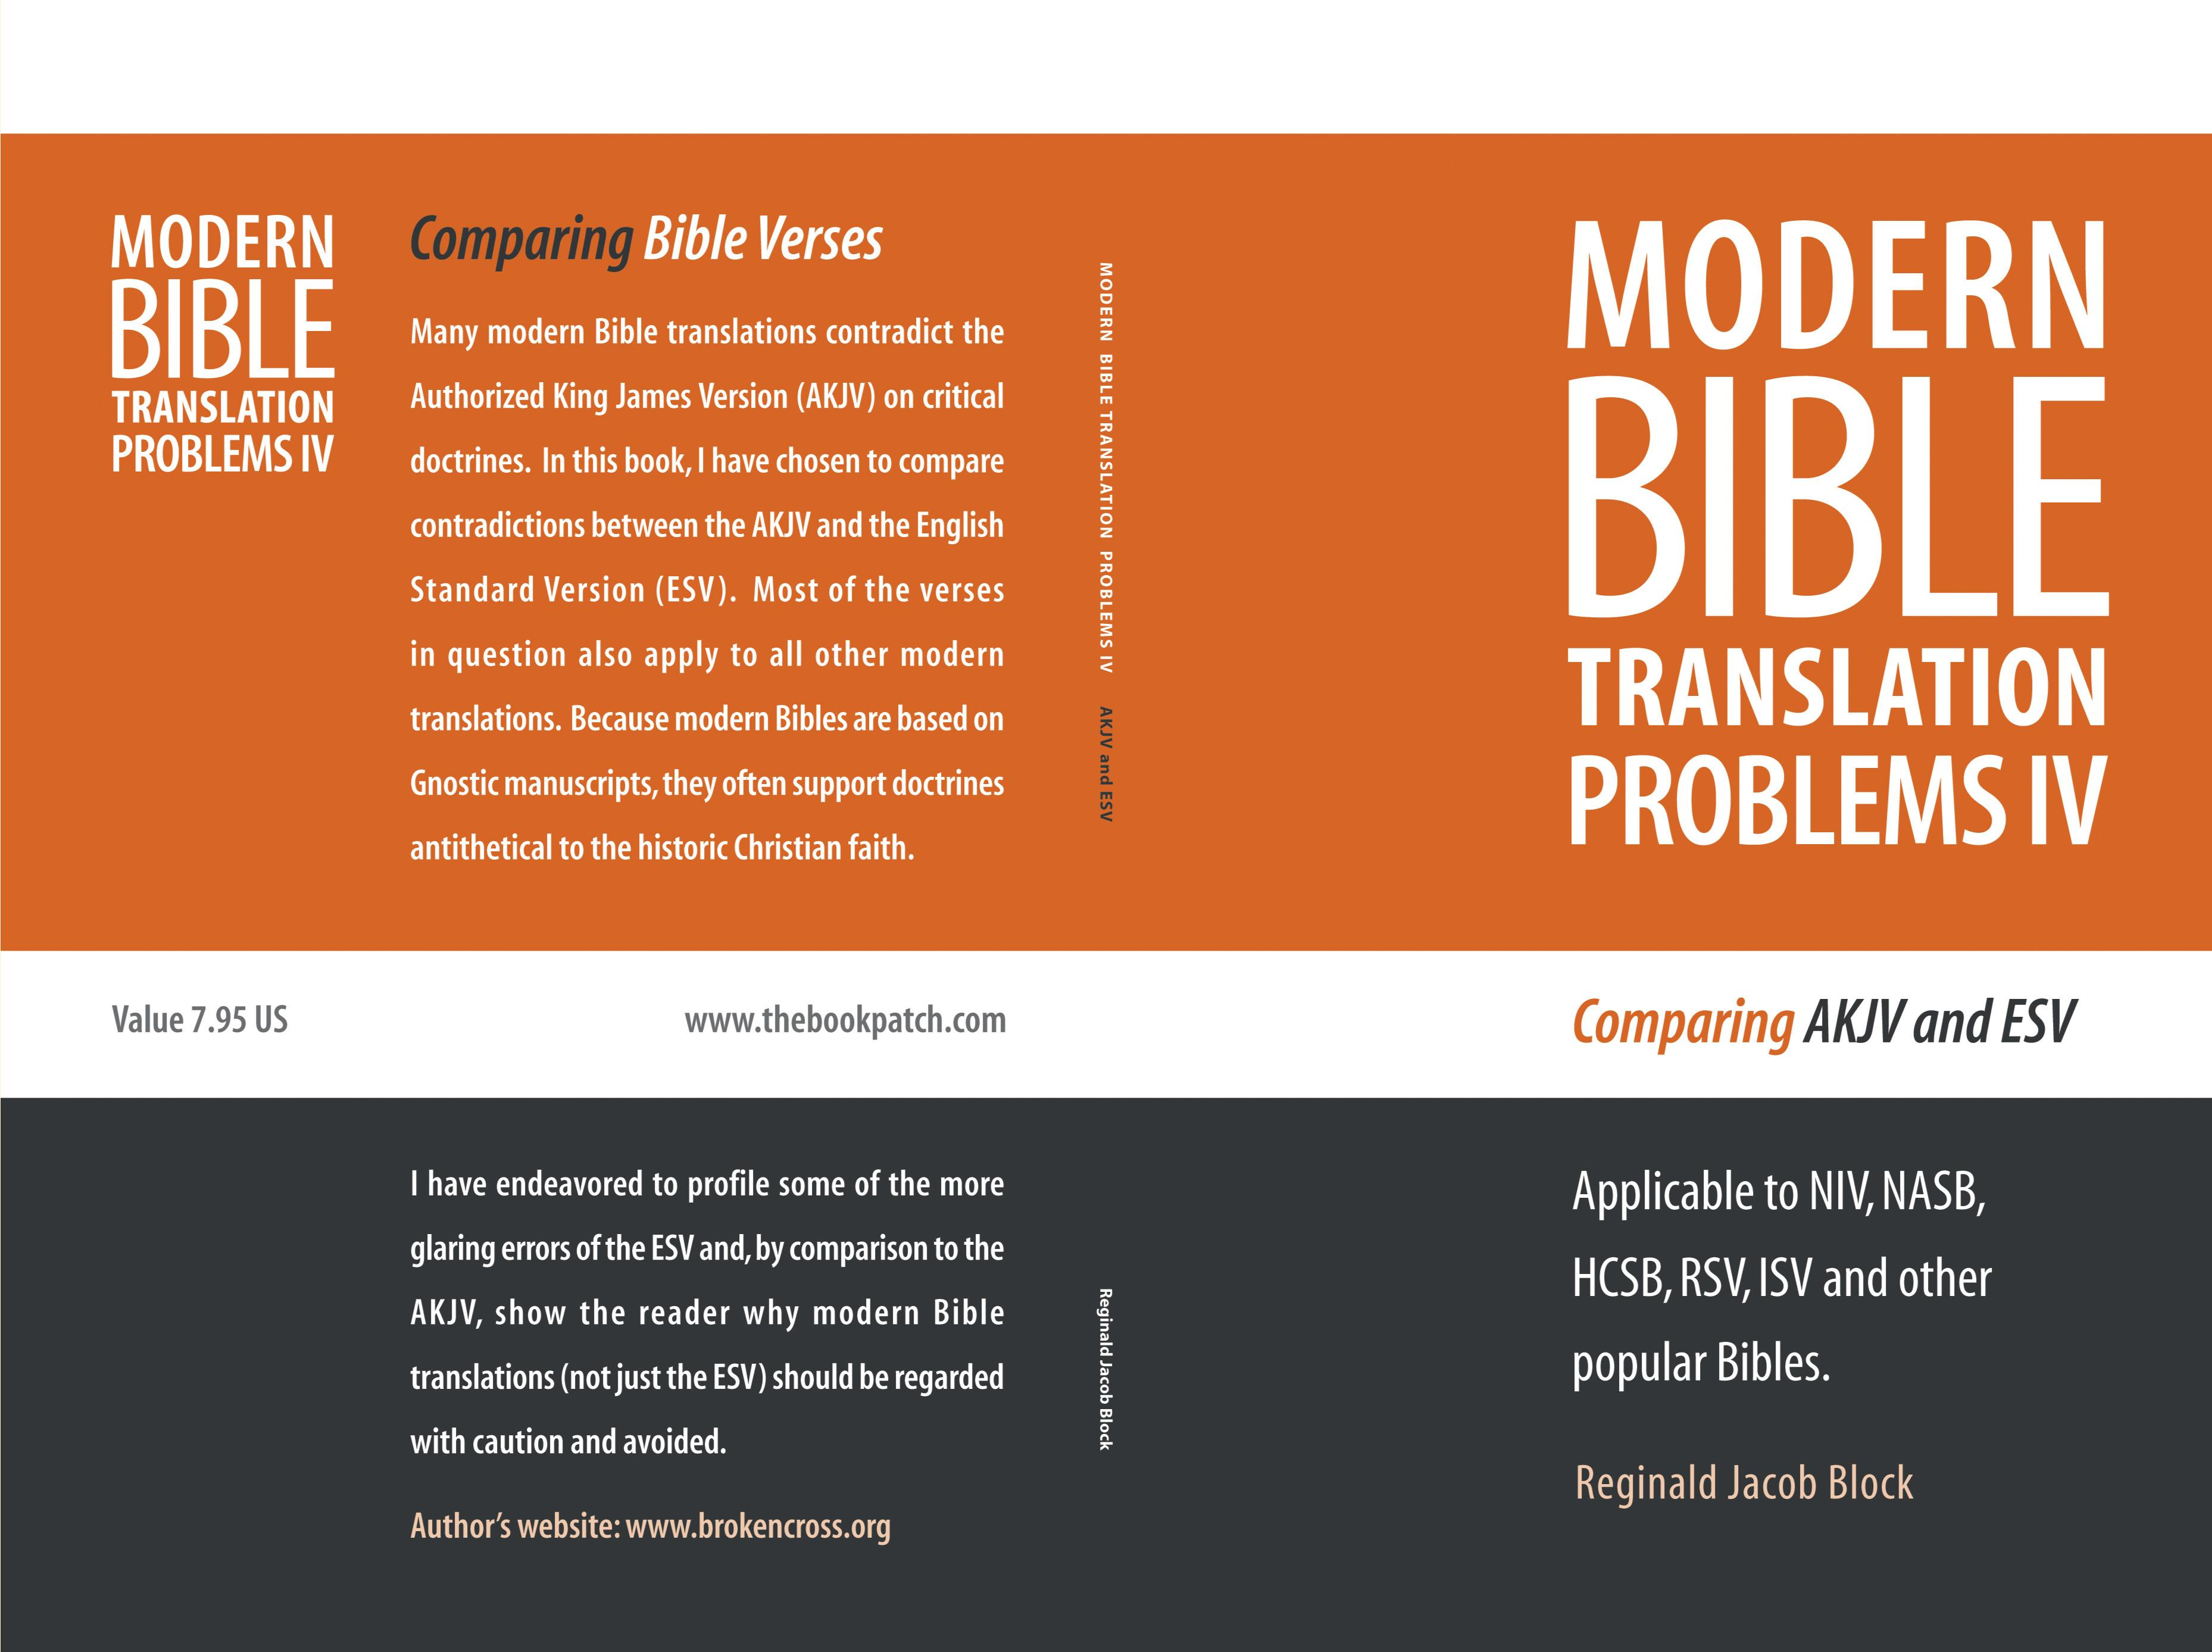 modern bible translation problems iv by reginald jacob